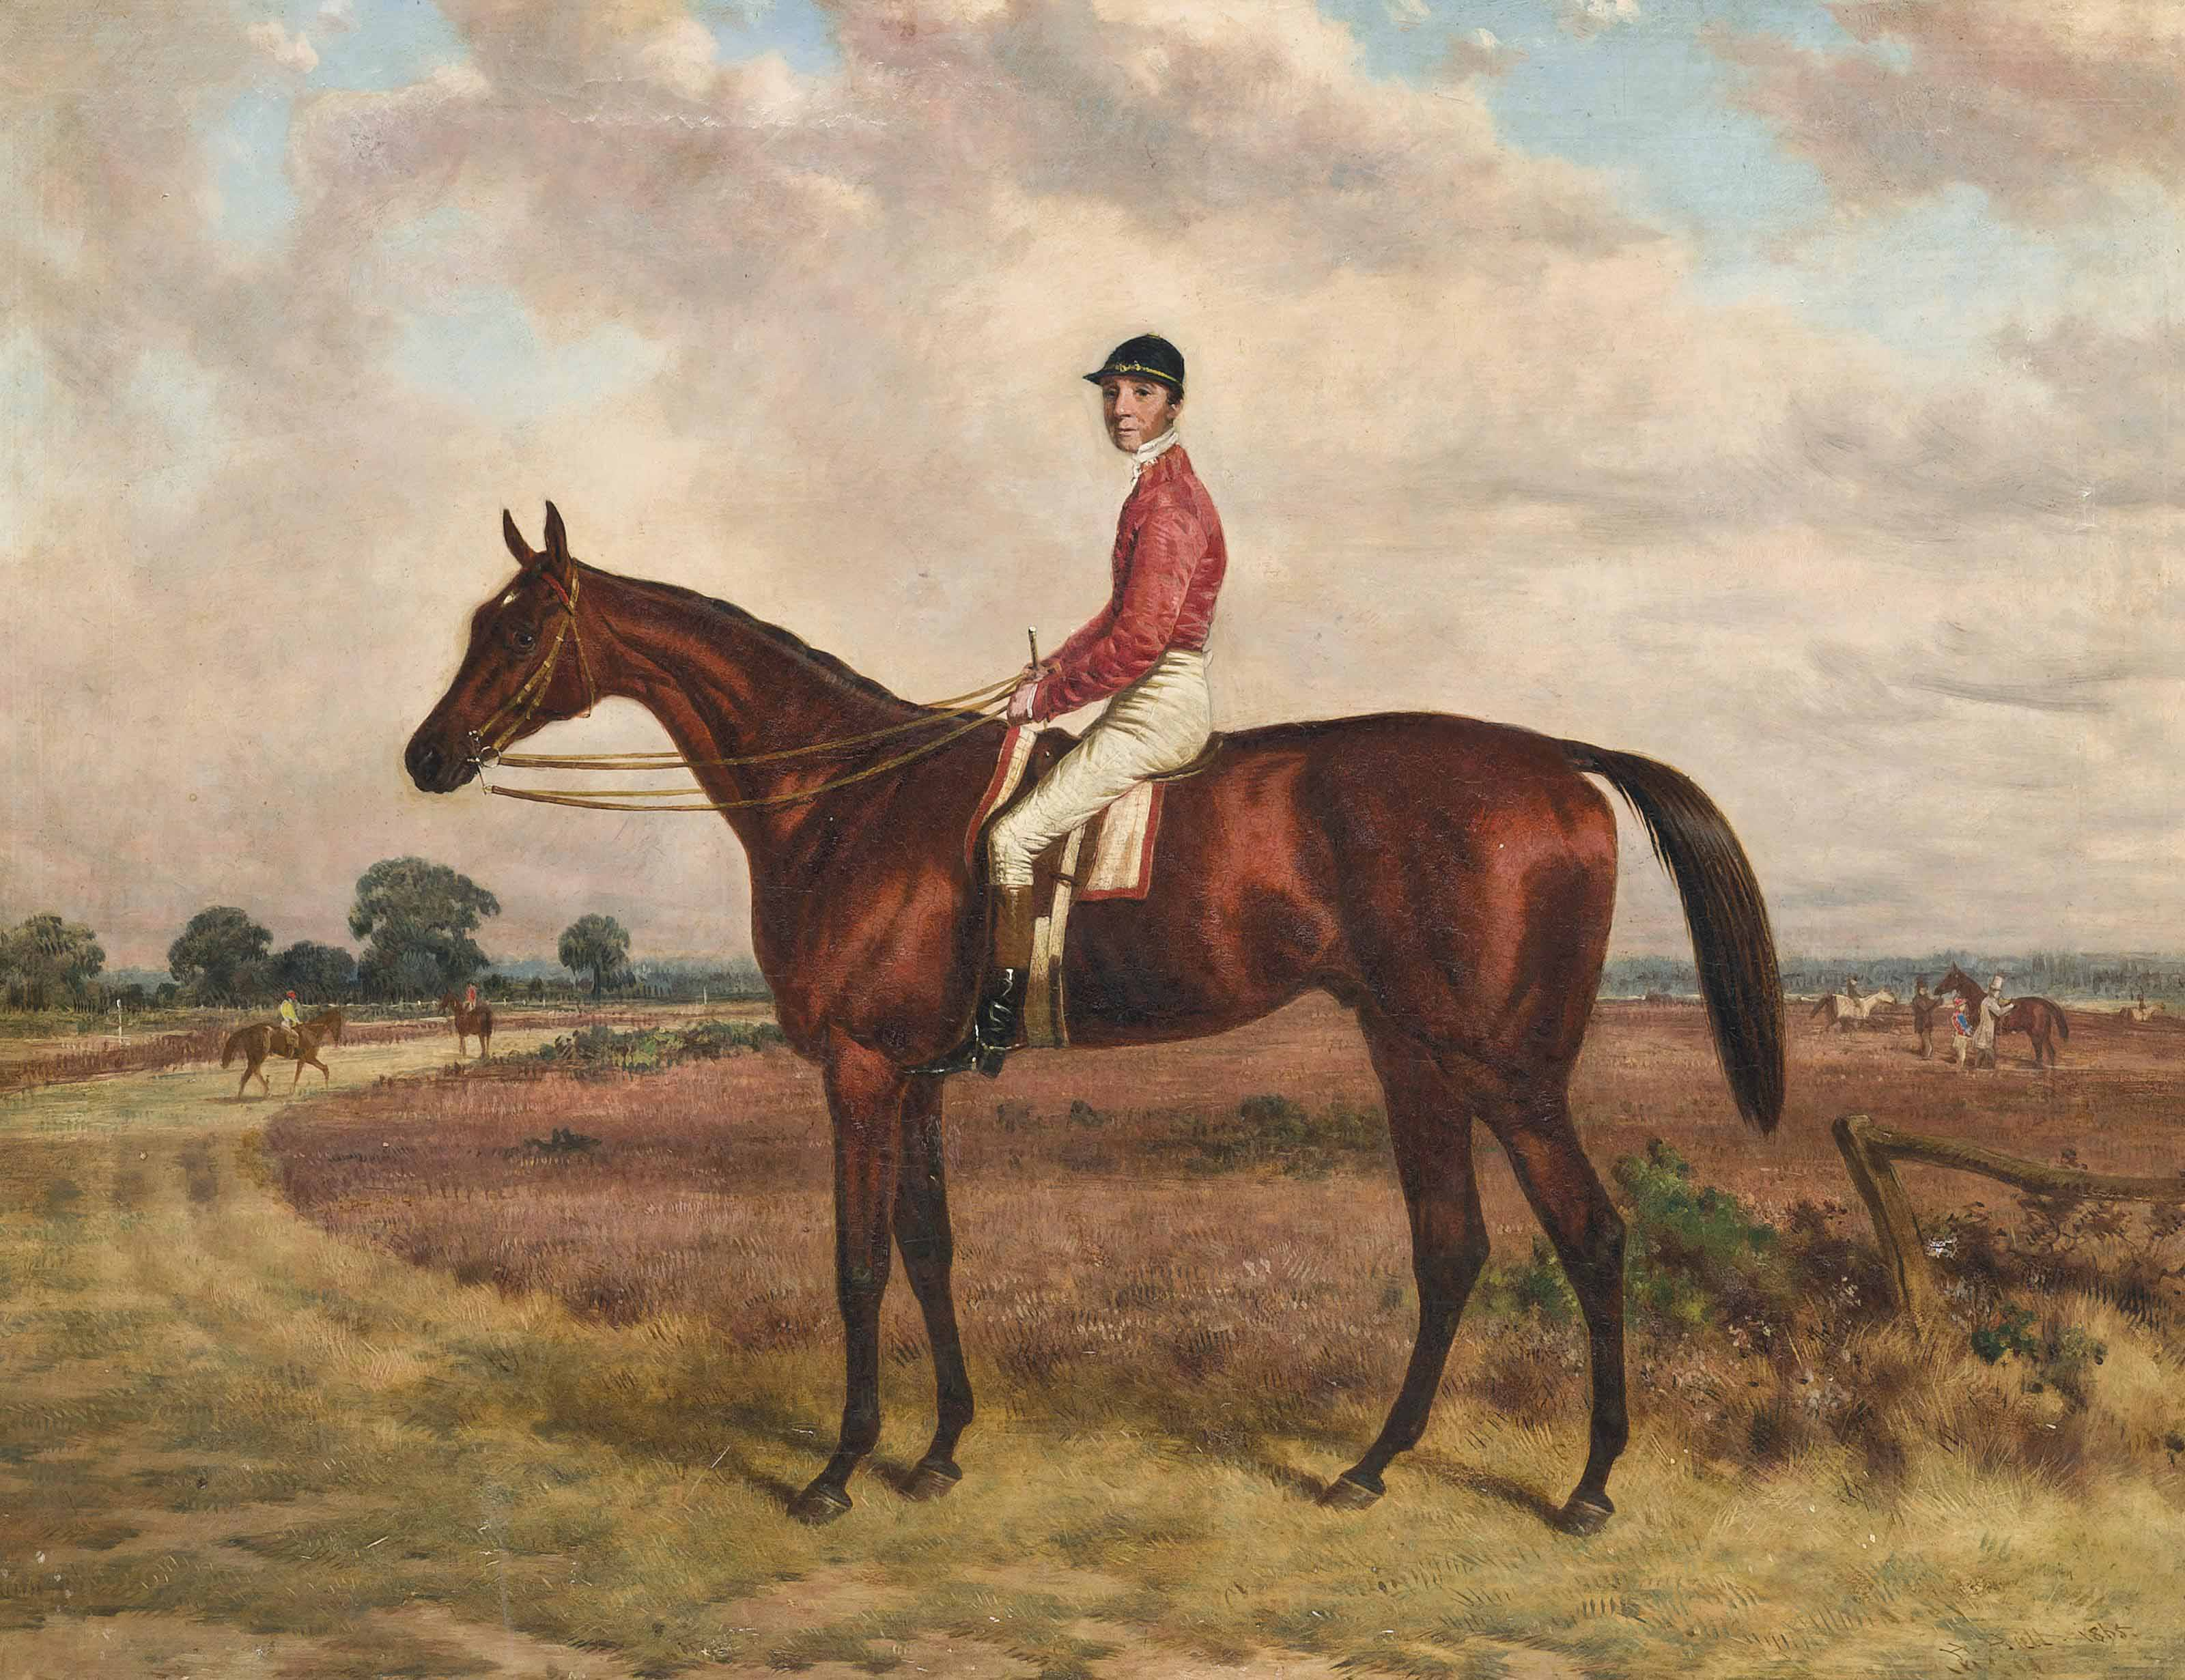 Bay racehorse, with jockey up